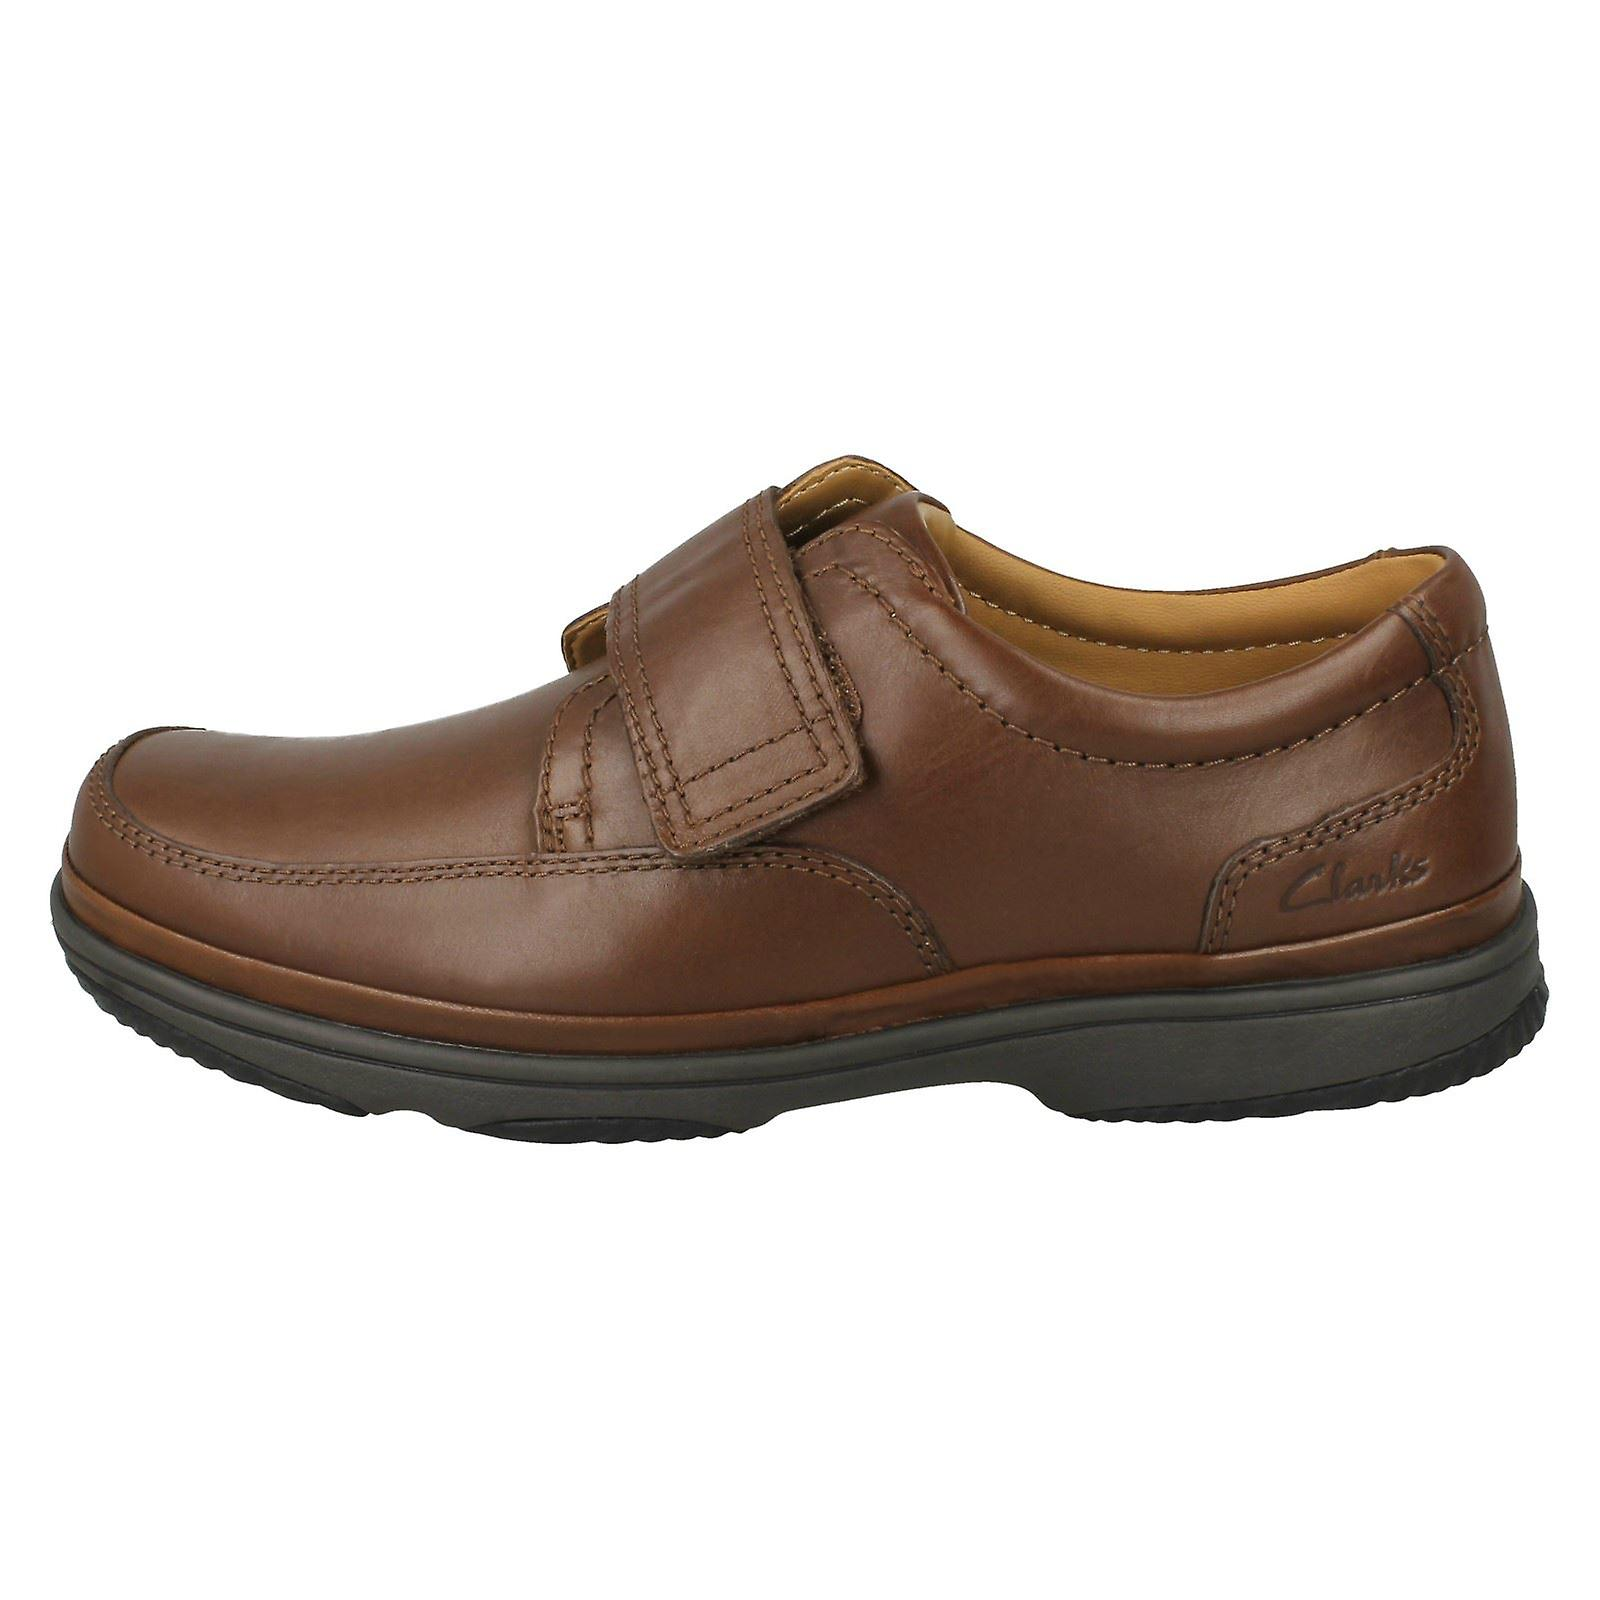 Swift Extra Fitting Shoes Riptape Mens Clarks Turn Strap Wide w7vx1560q